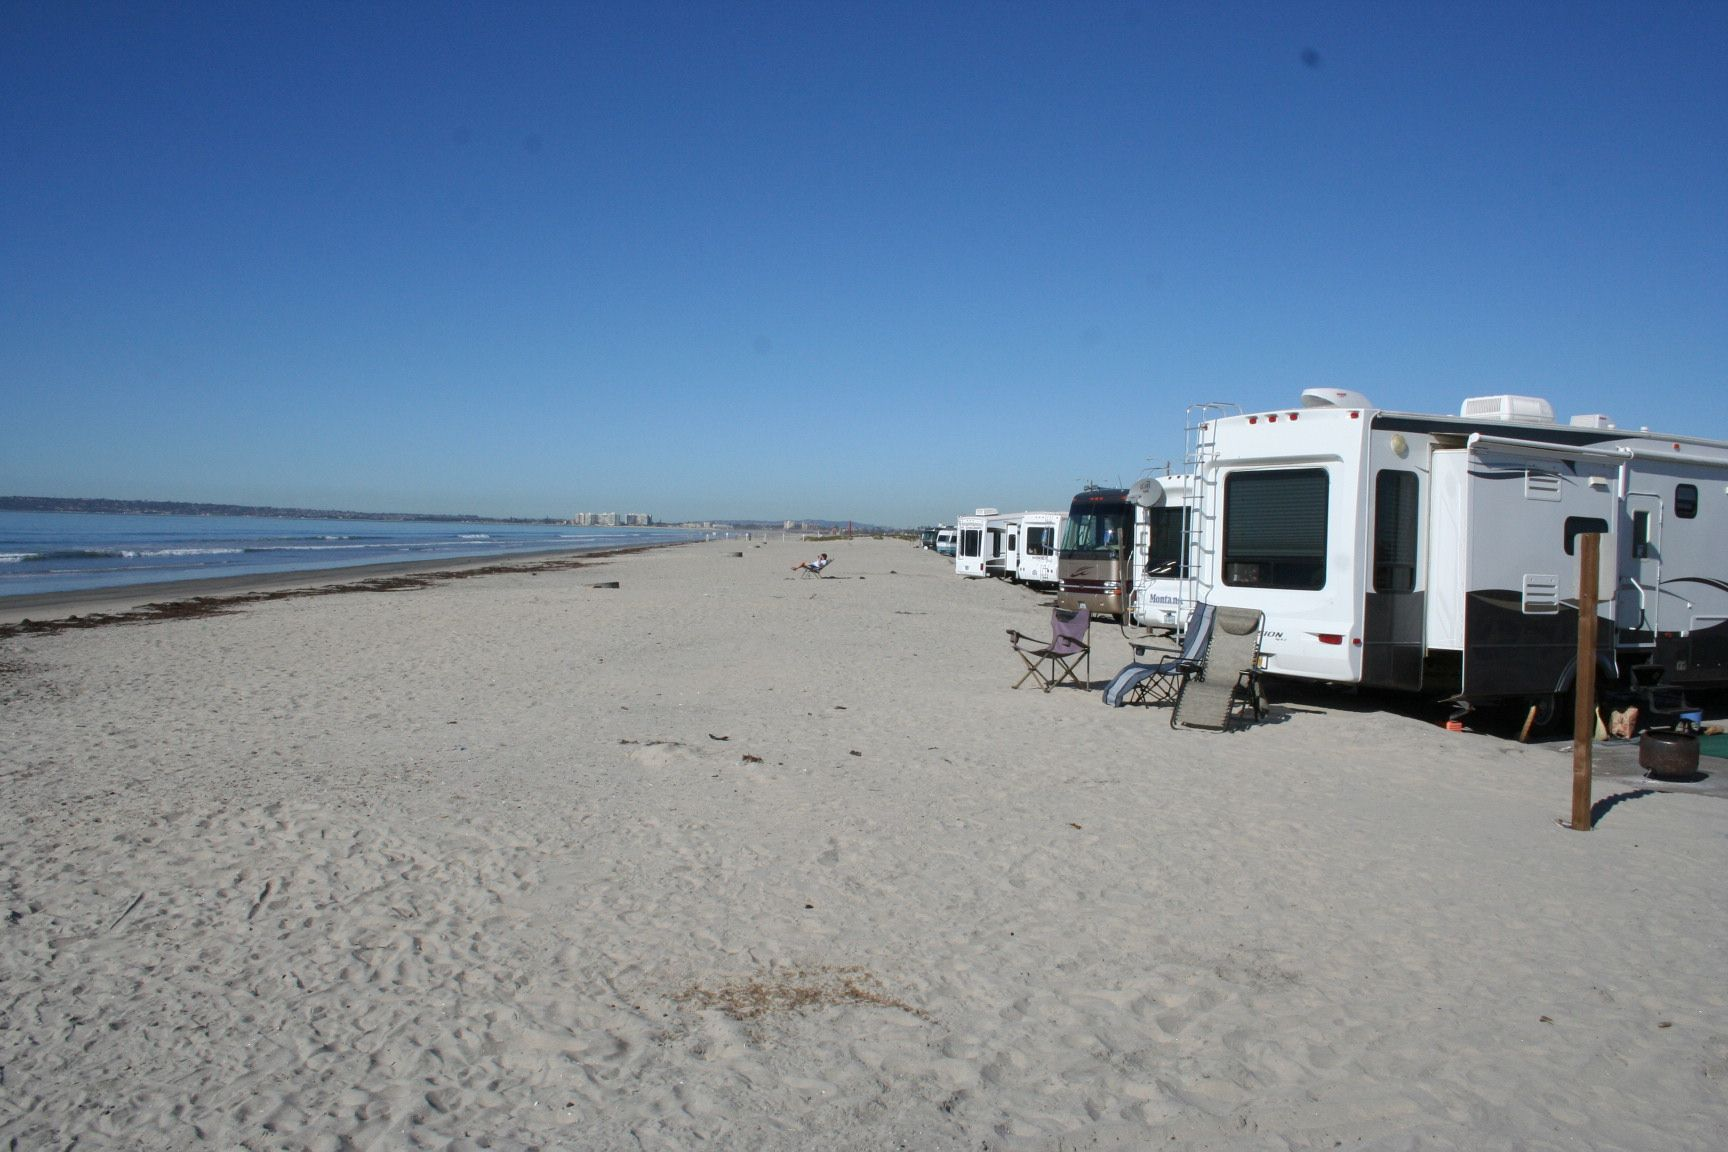 Silver Strand State Beach Offers Some Great Rv Front Camping Hotel Del Coronado Is A Few Miles North Famous For Its Ghost Lady That Roams The